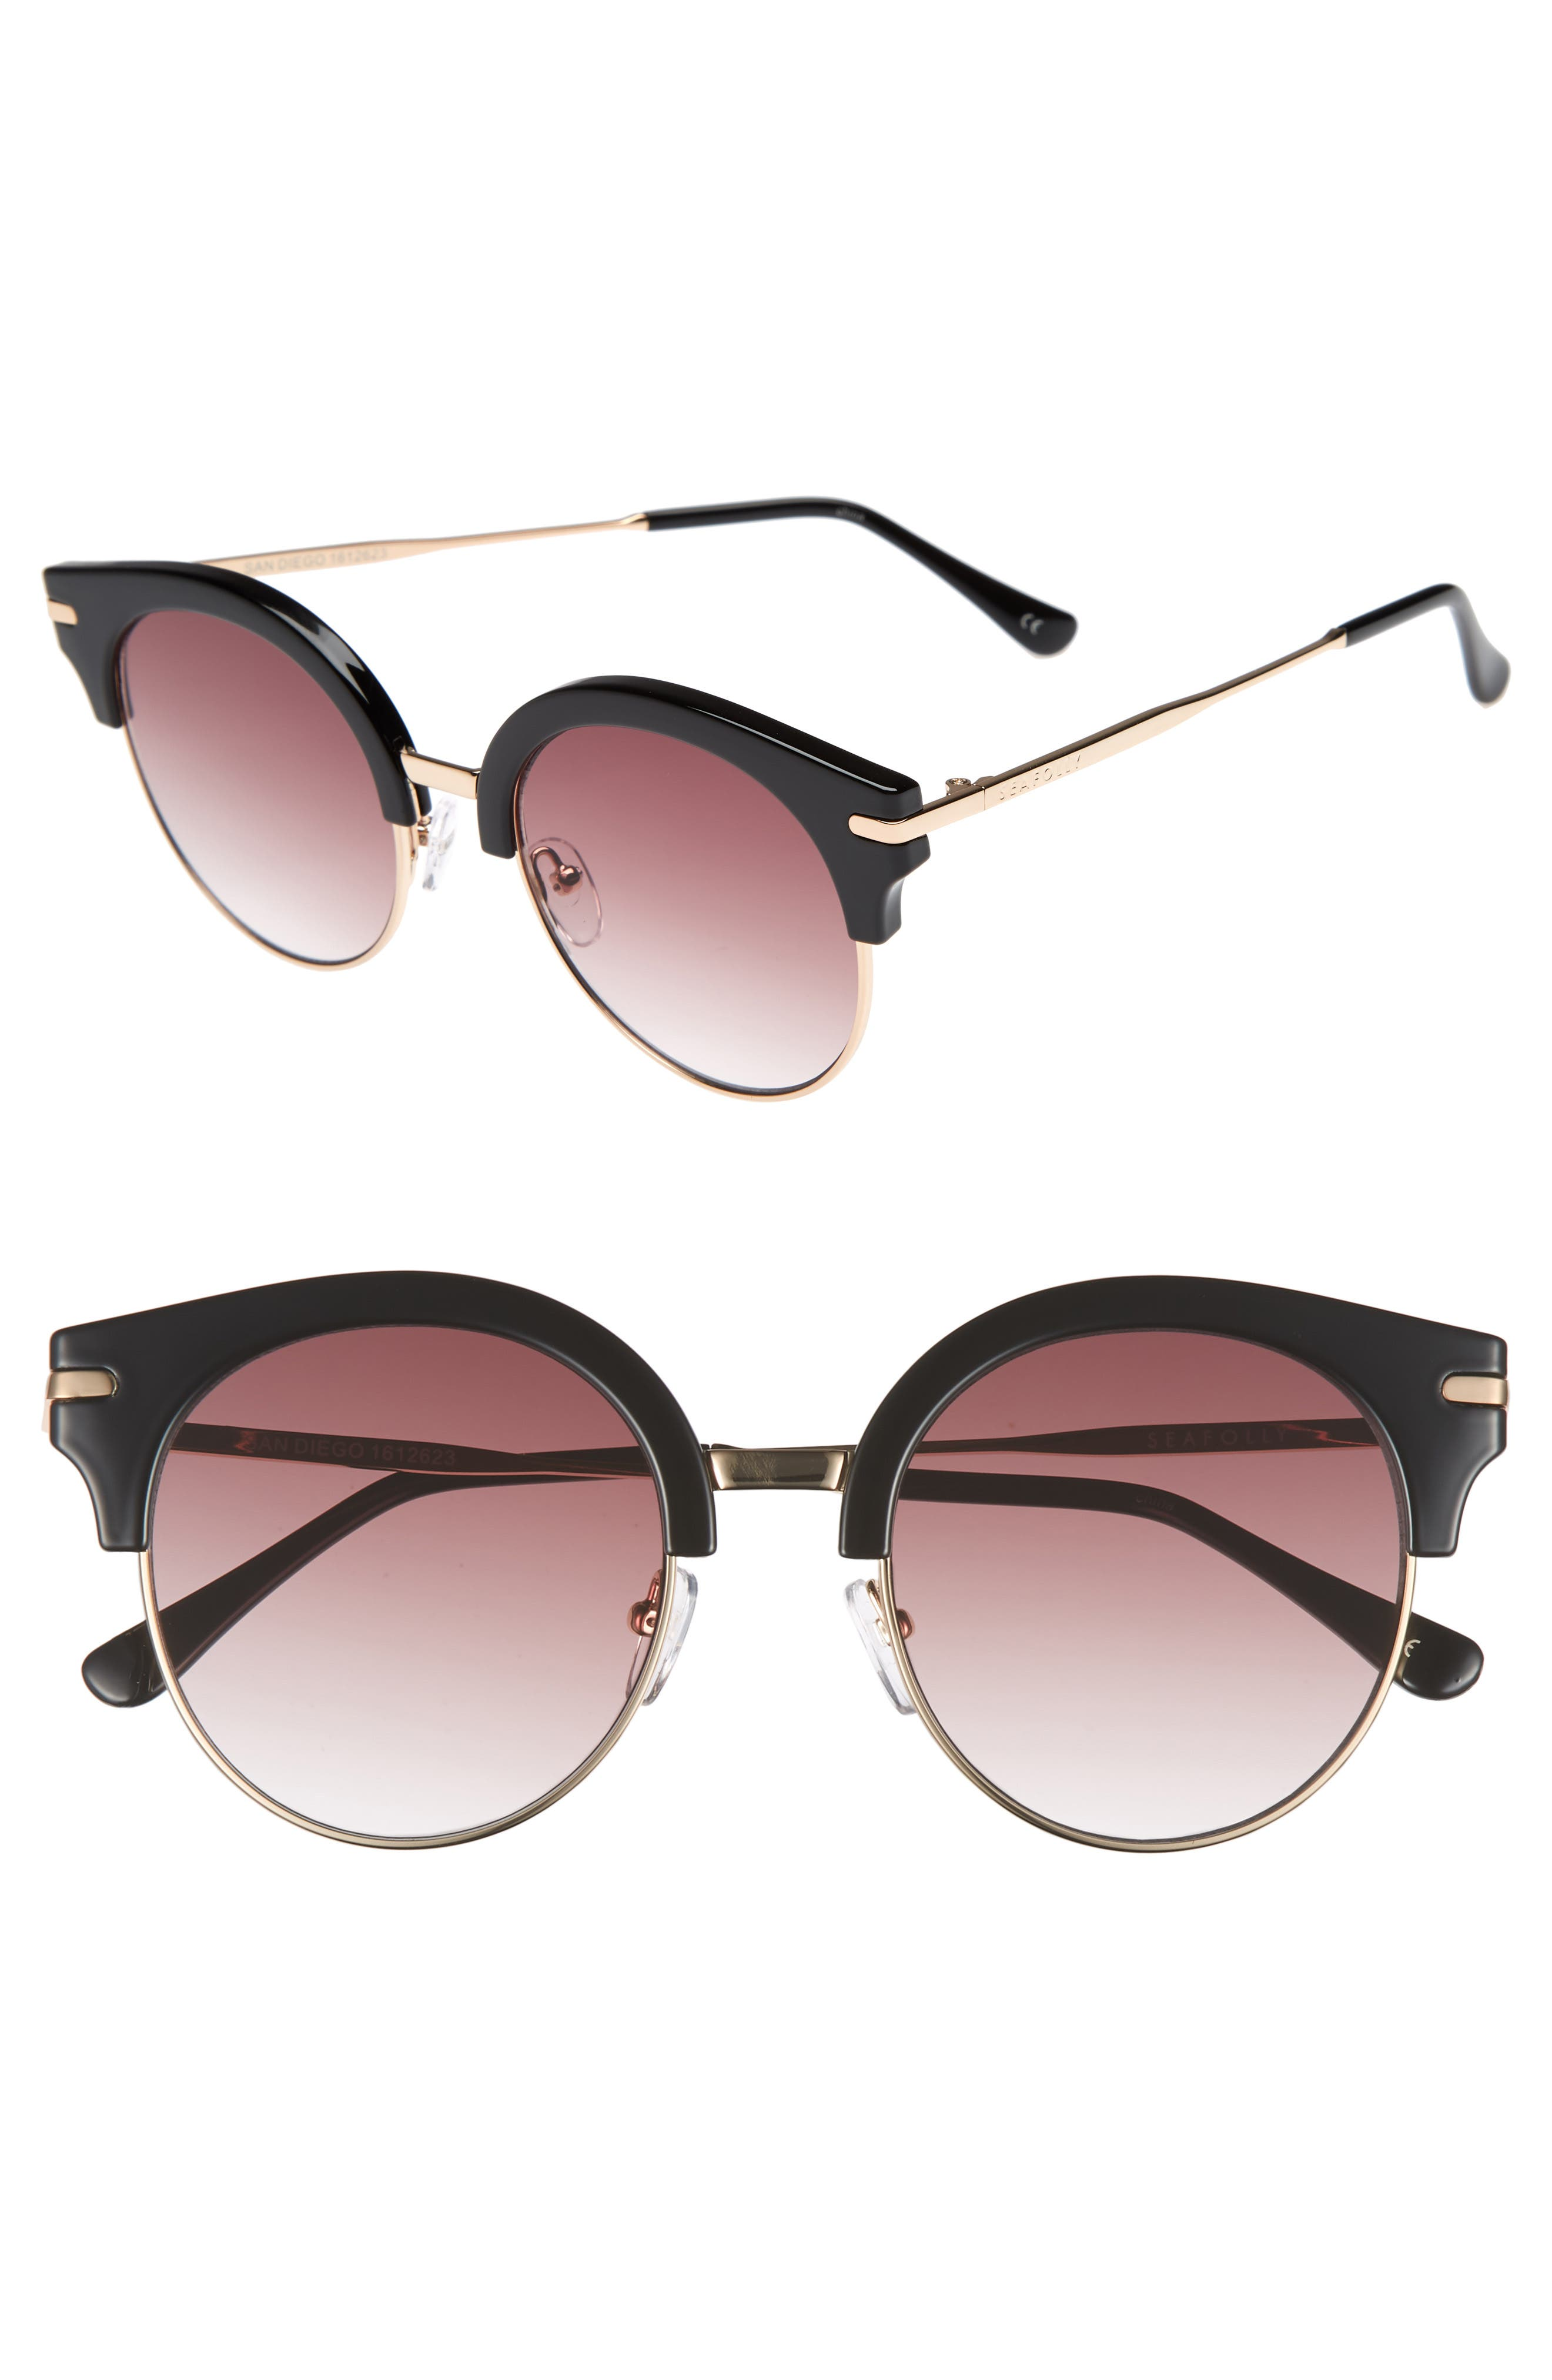 San Diego 52mm Cat Eye Sunglasses,                         Main,                         color, 001